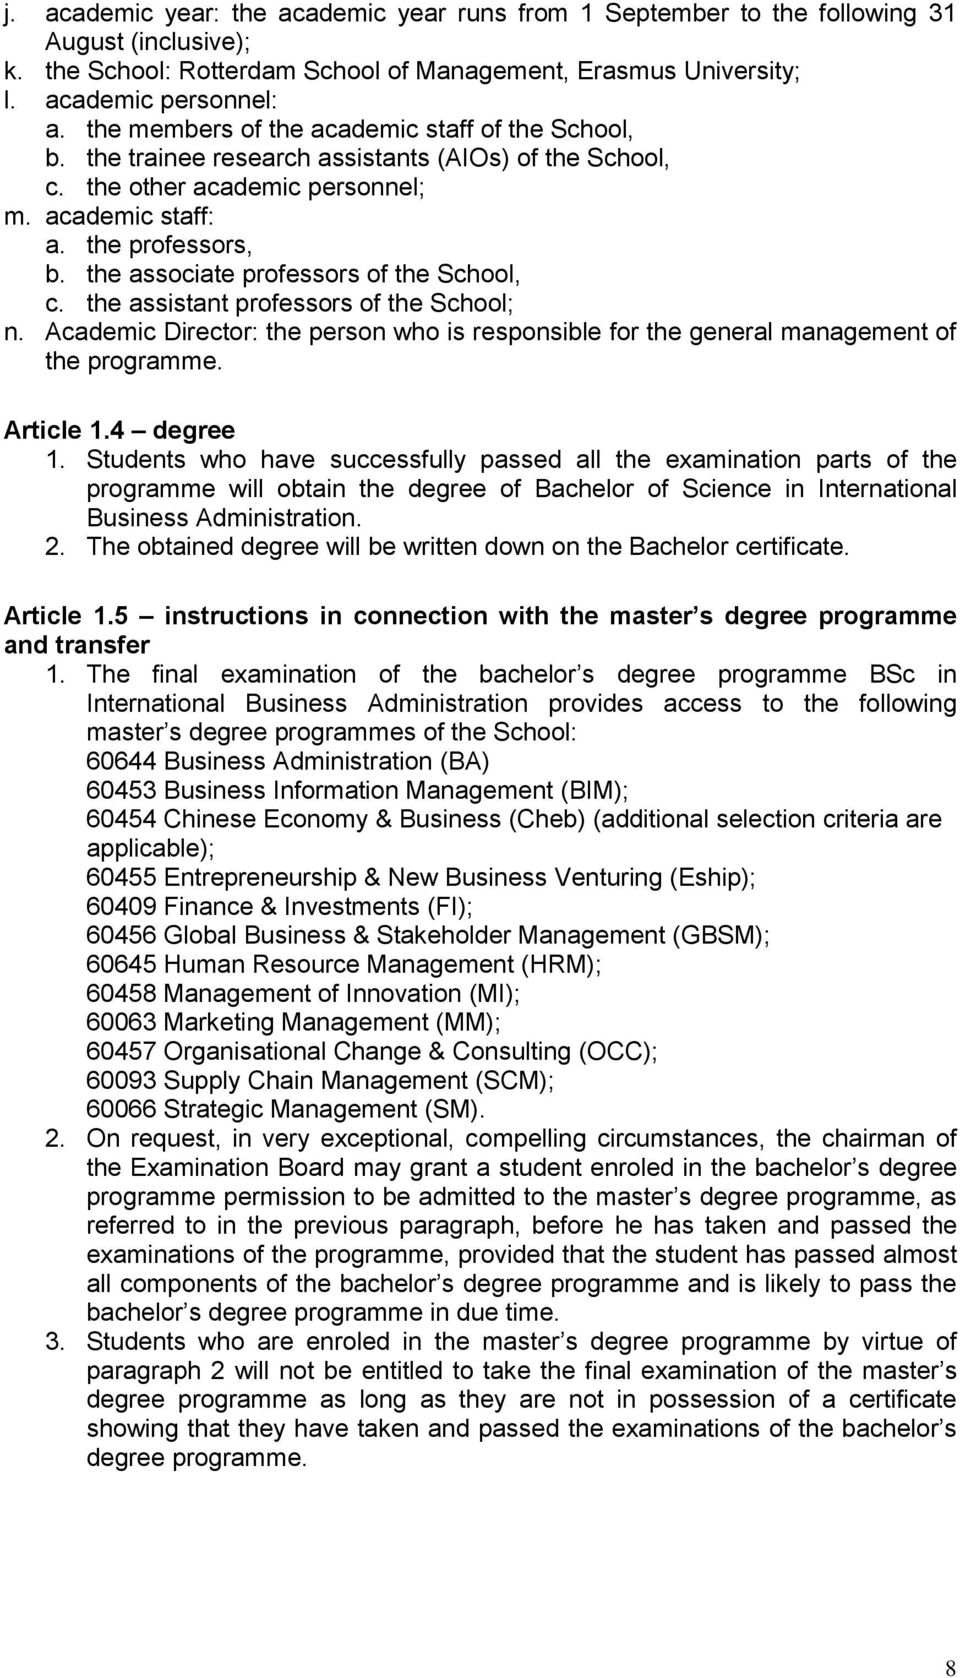 the associate professors of the School, c. the assistant professors of the School; n. Academic Director: the person who is responsible for the general management of the programme. Article 1.